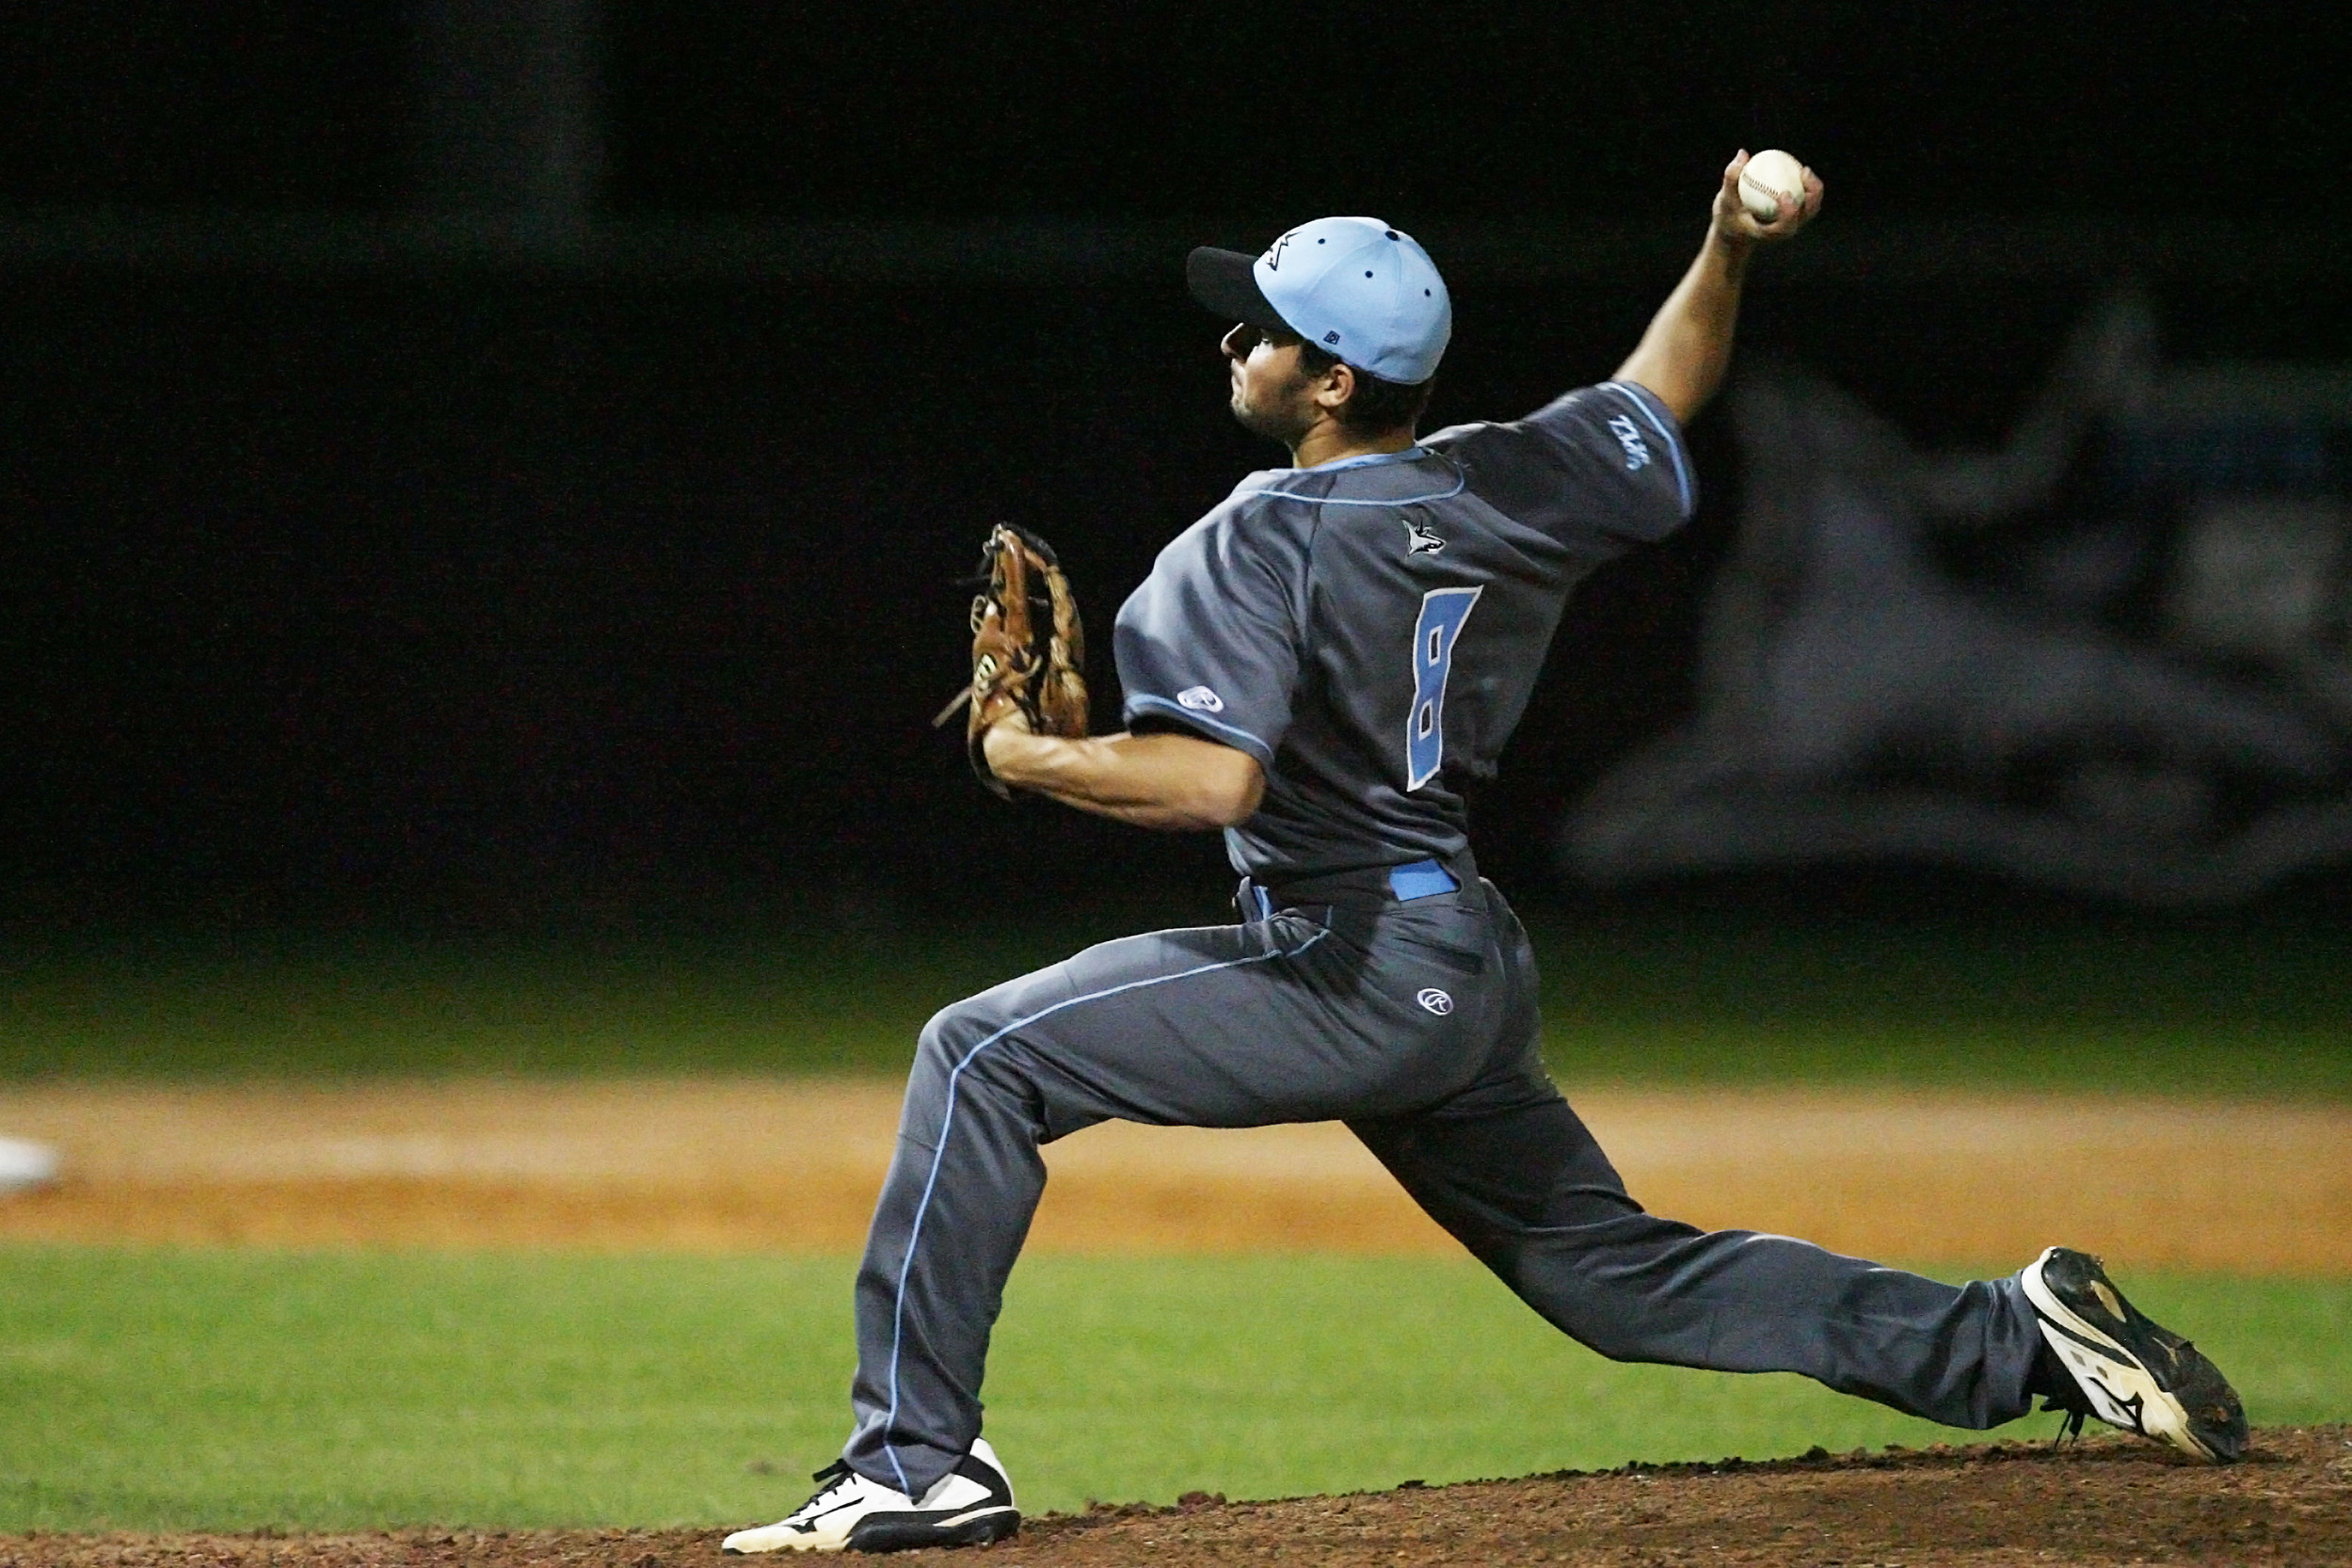 #8 Eric Aleman pitches for the Sharks against Nease